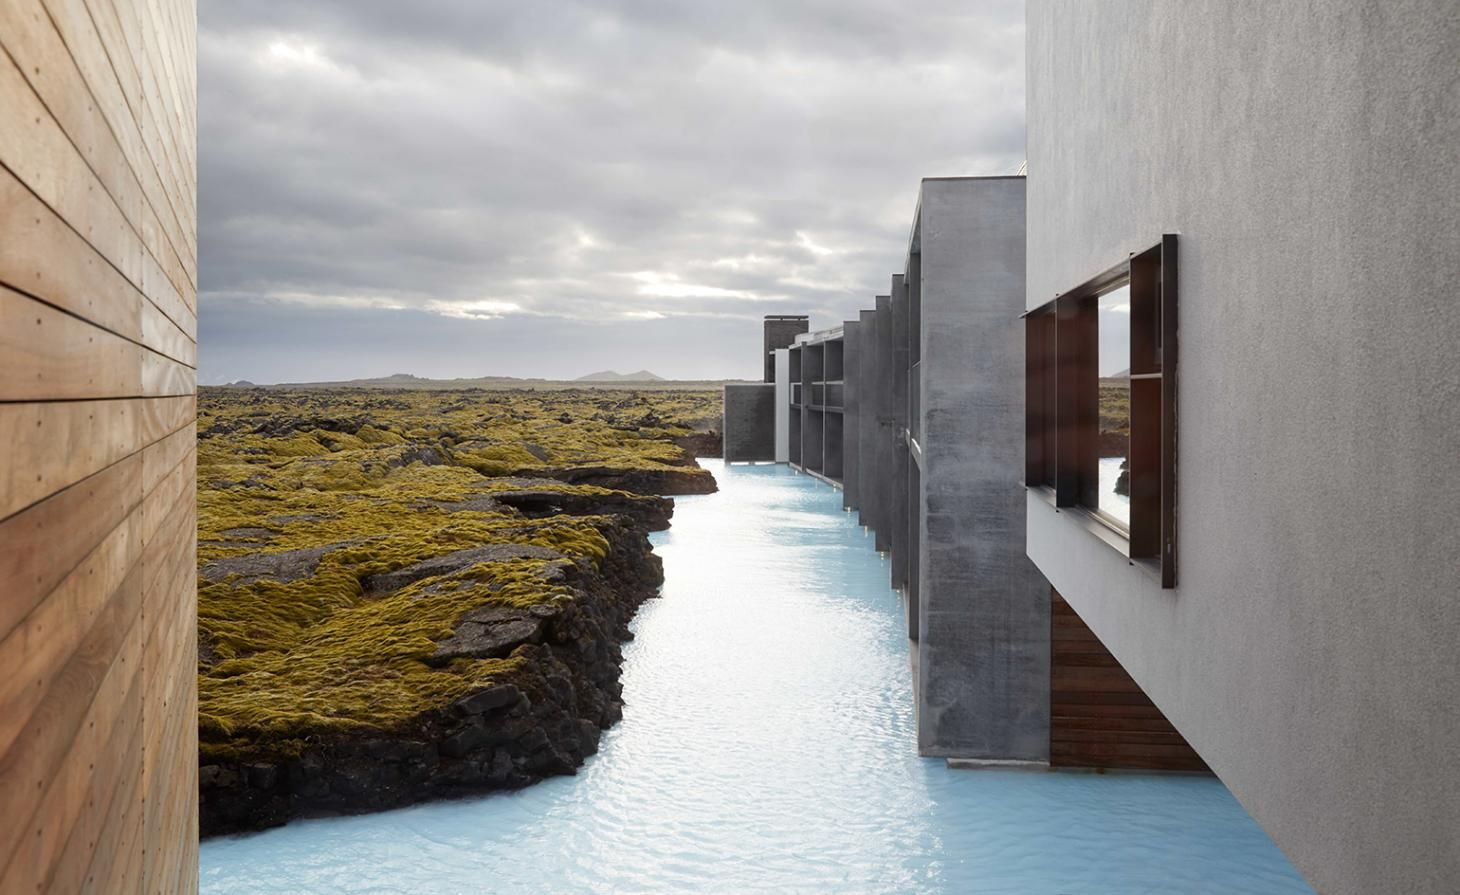 The Retreat At Blue Lagoon Iceland Hotel Review Grindavik Iceland In House Restaurant Moss Delivers Blue Lagoon Iceland Blue Lagoon Resort Hotels Design